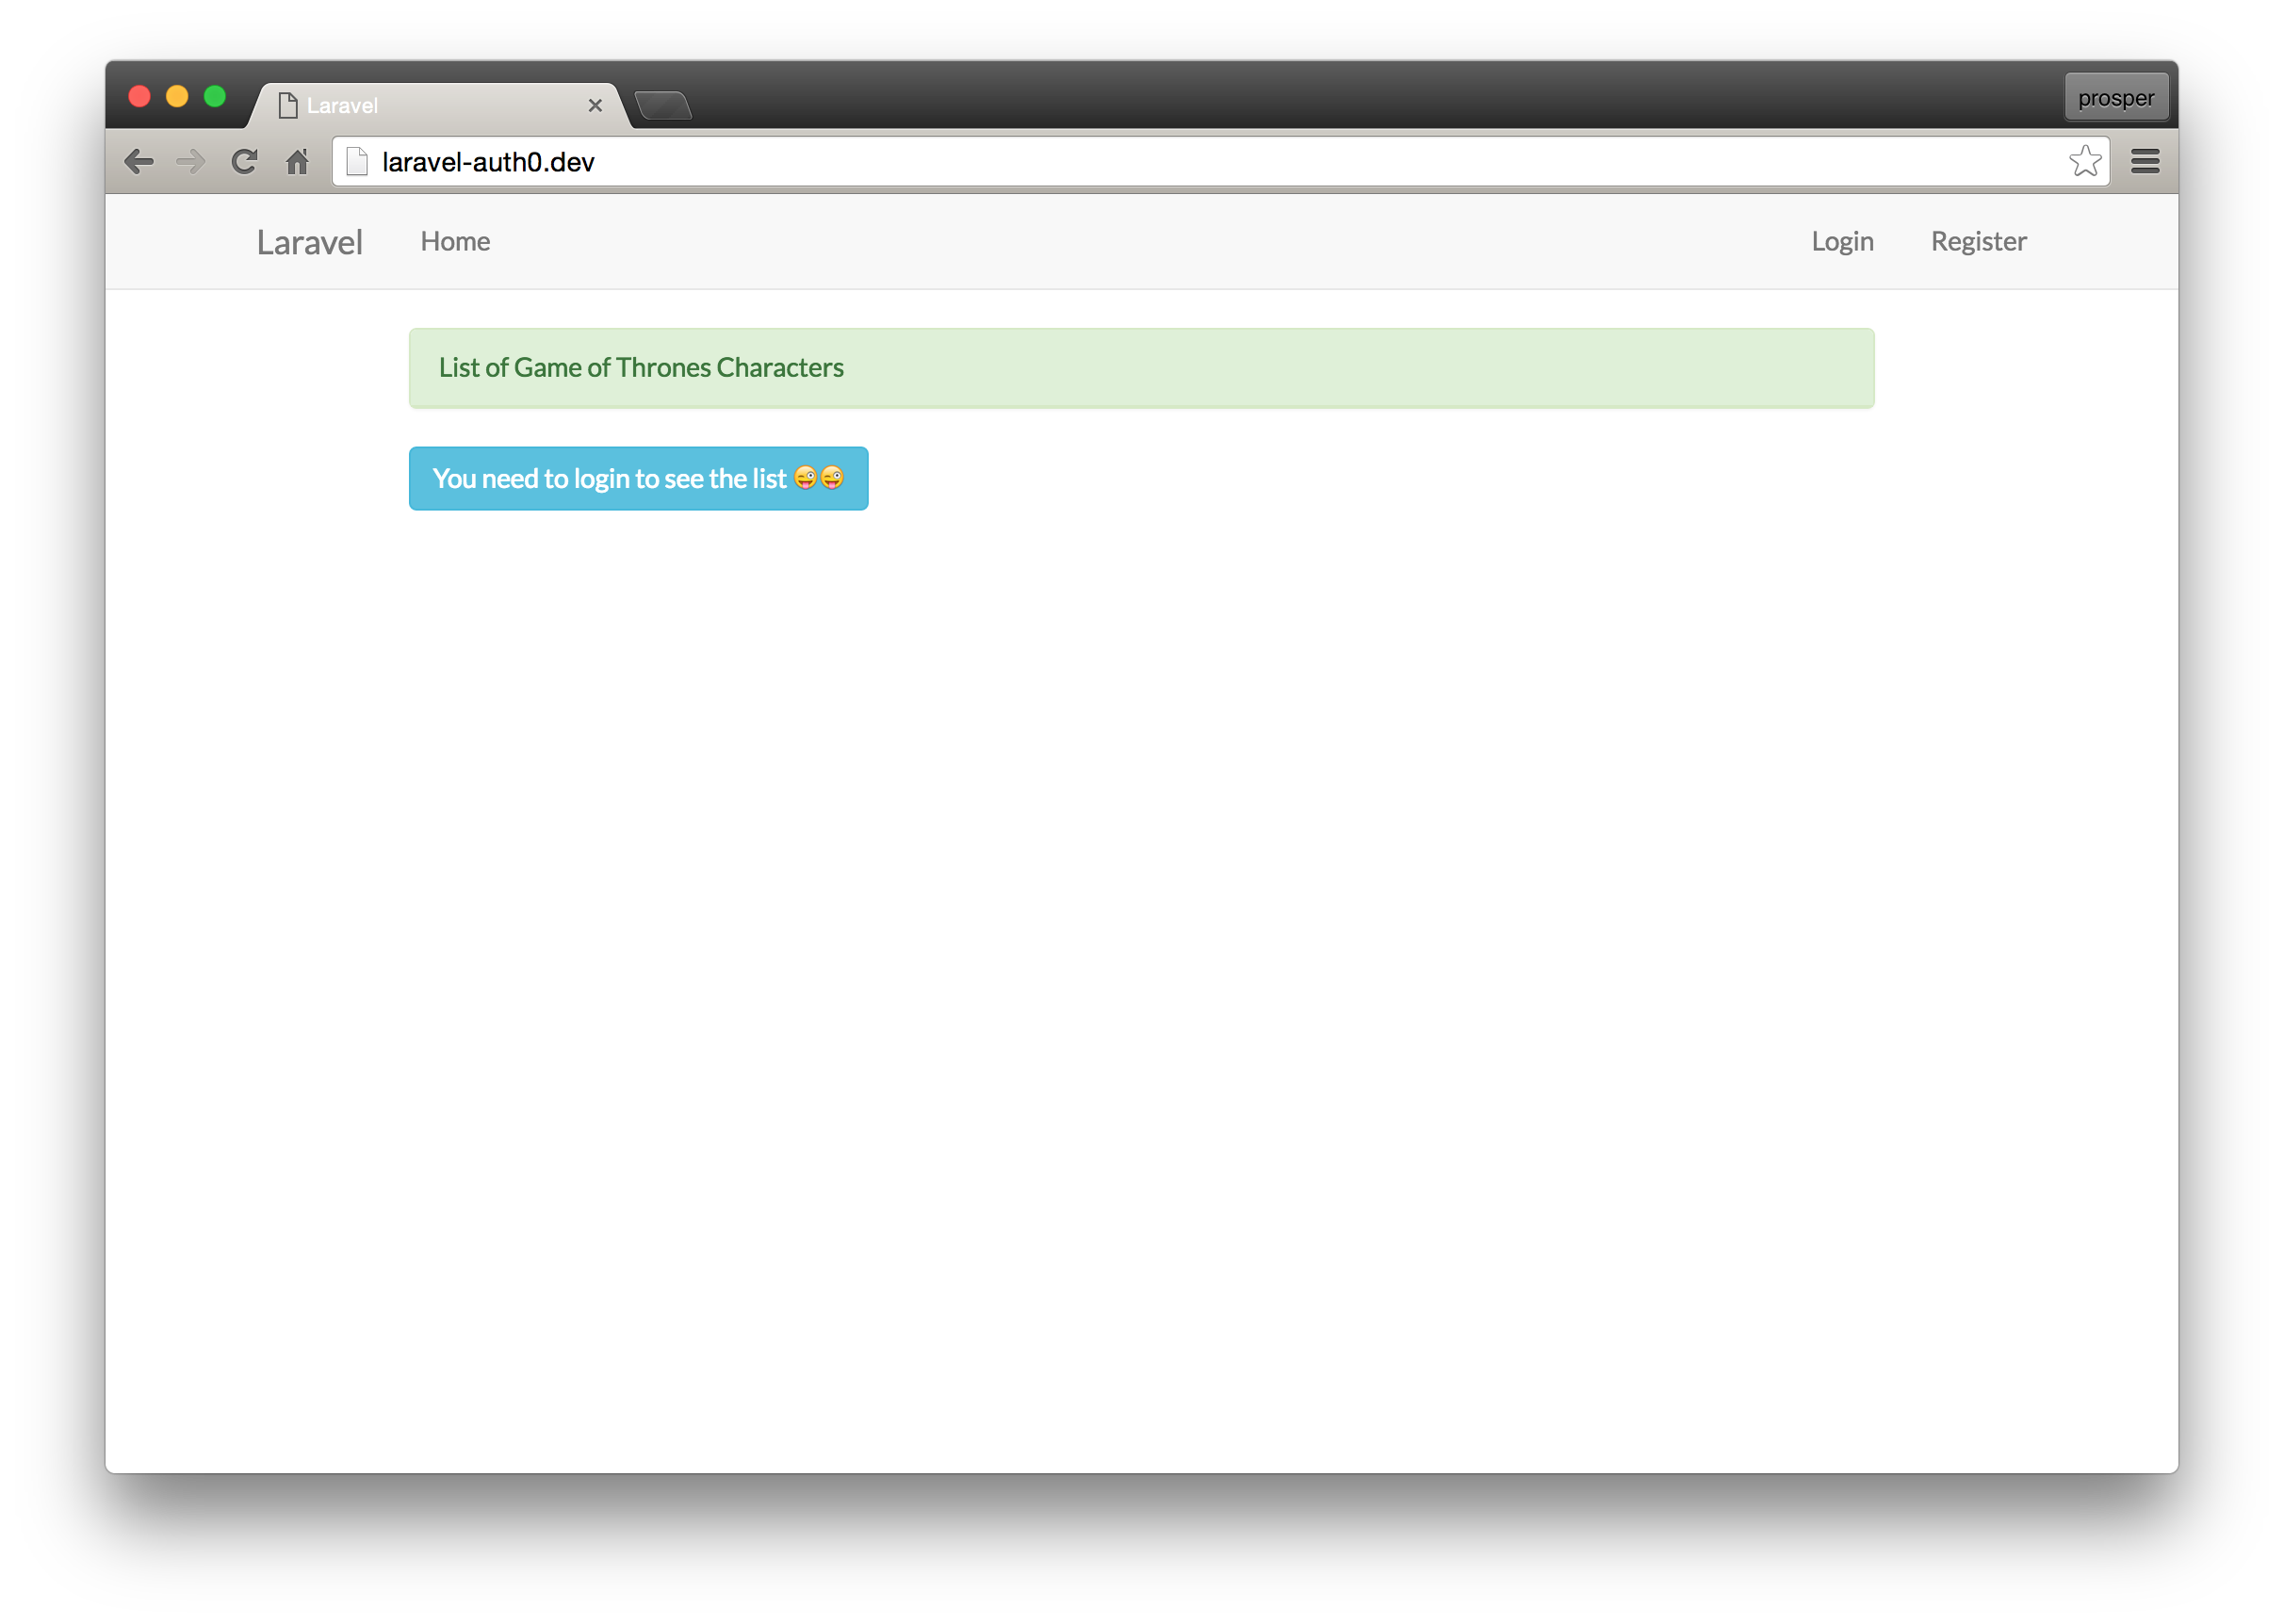 Create Your First Laravel App and Add Authentication - DZone